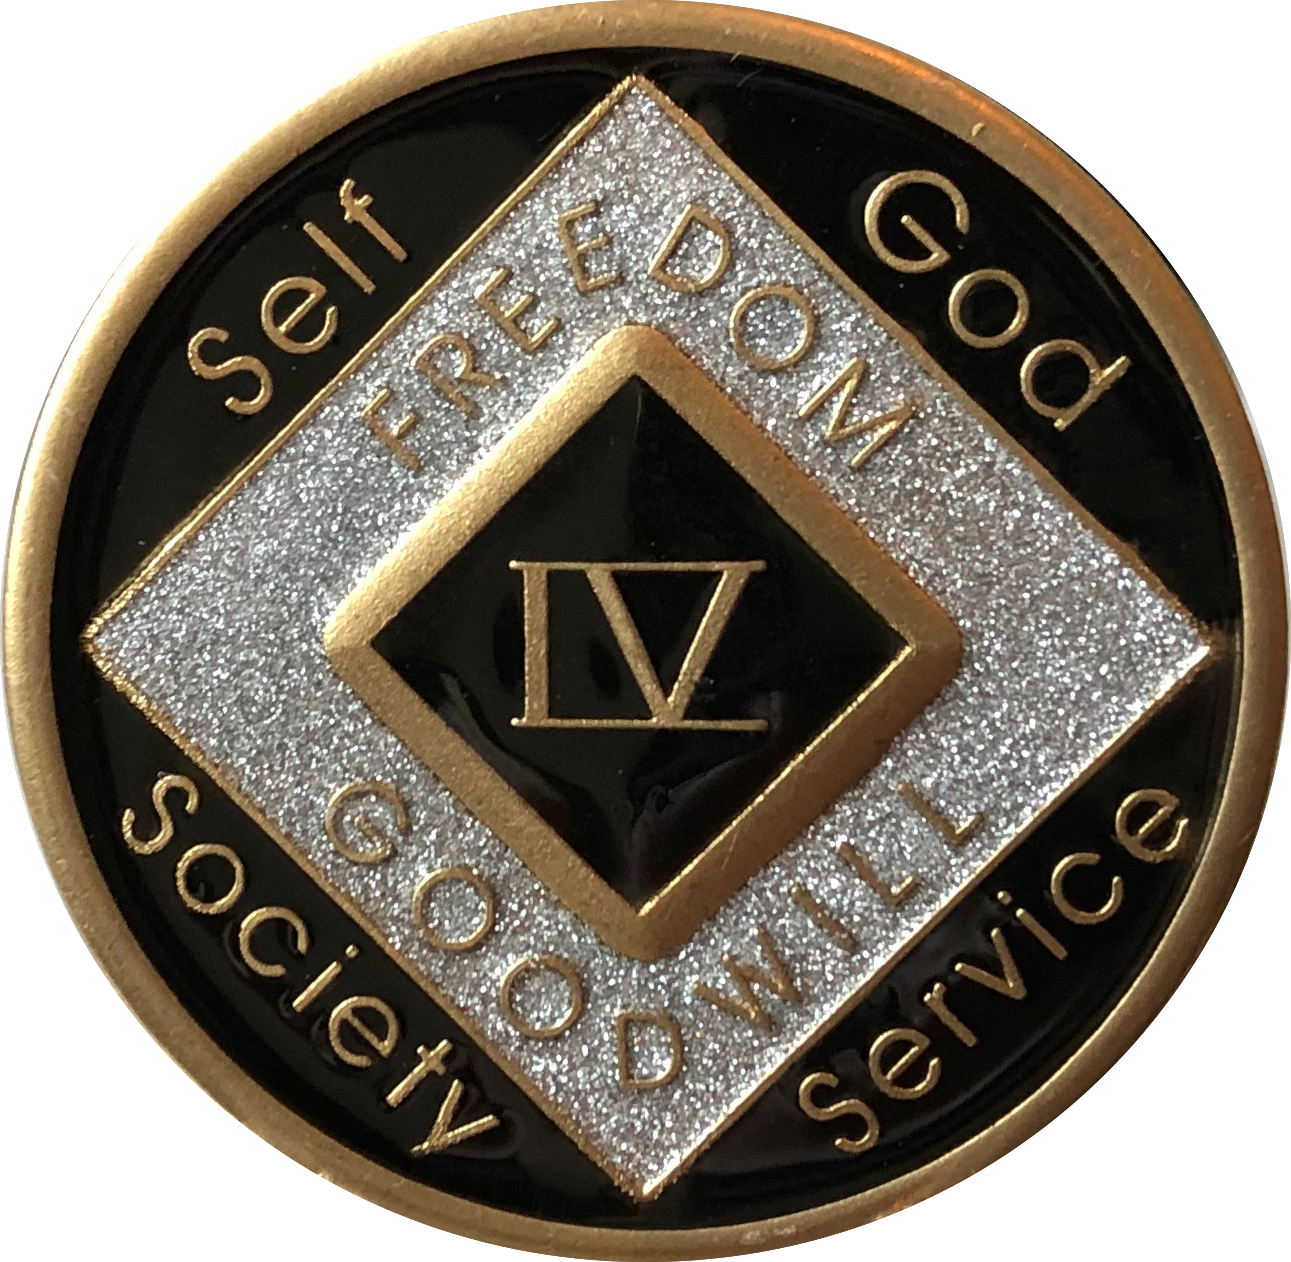 NA Black Gold Coin 37 Year Tri-Plate Narcotics Anonymous Medallion Out of Ashes